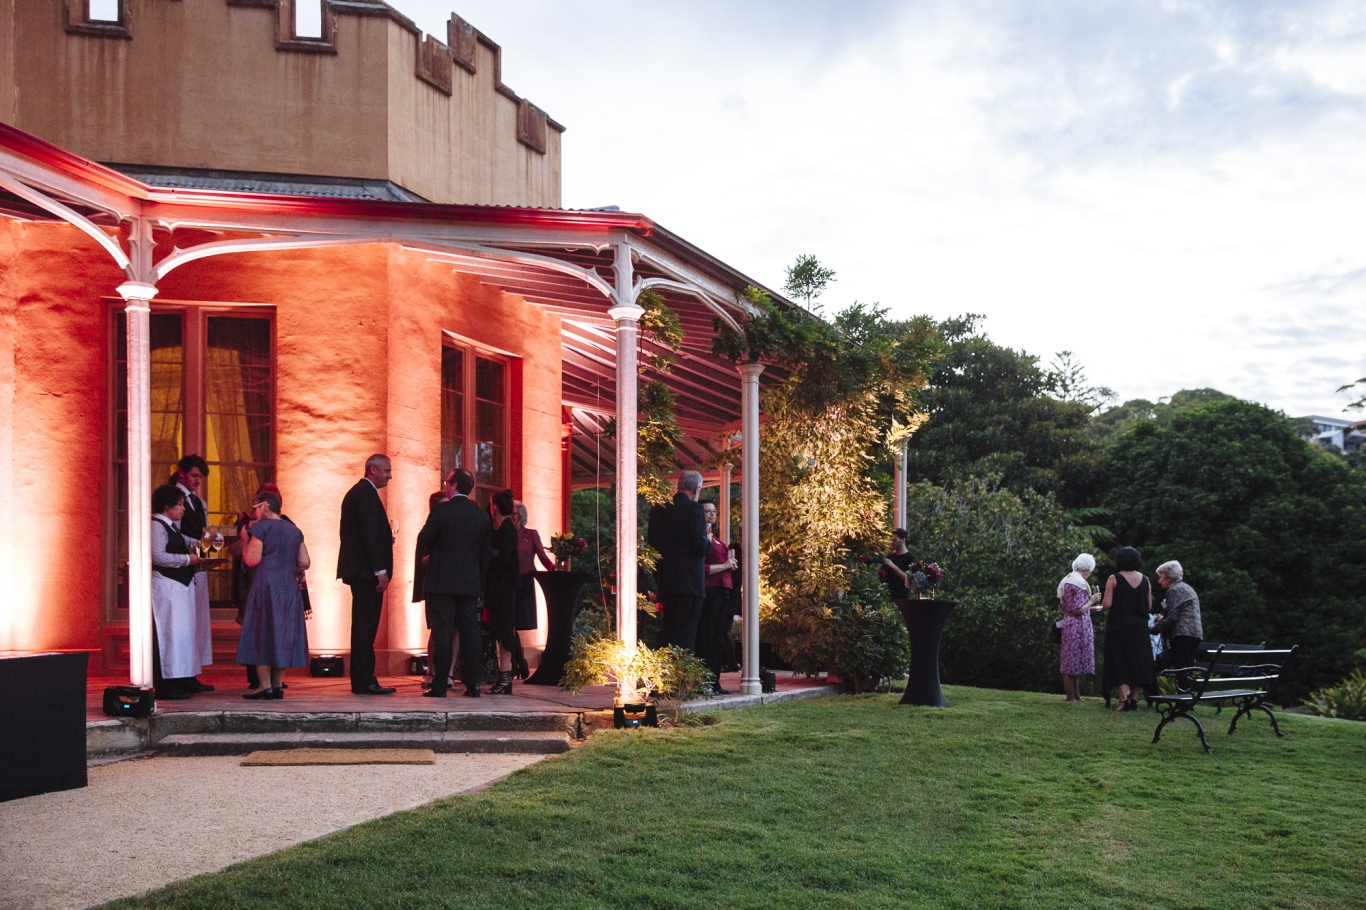 Exterior of house in early evening with lighting on verandah with gathering of people.